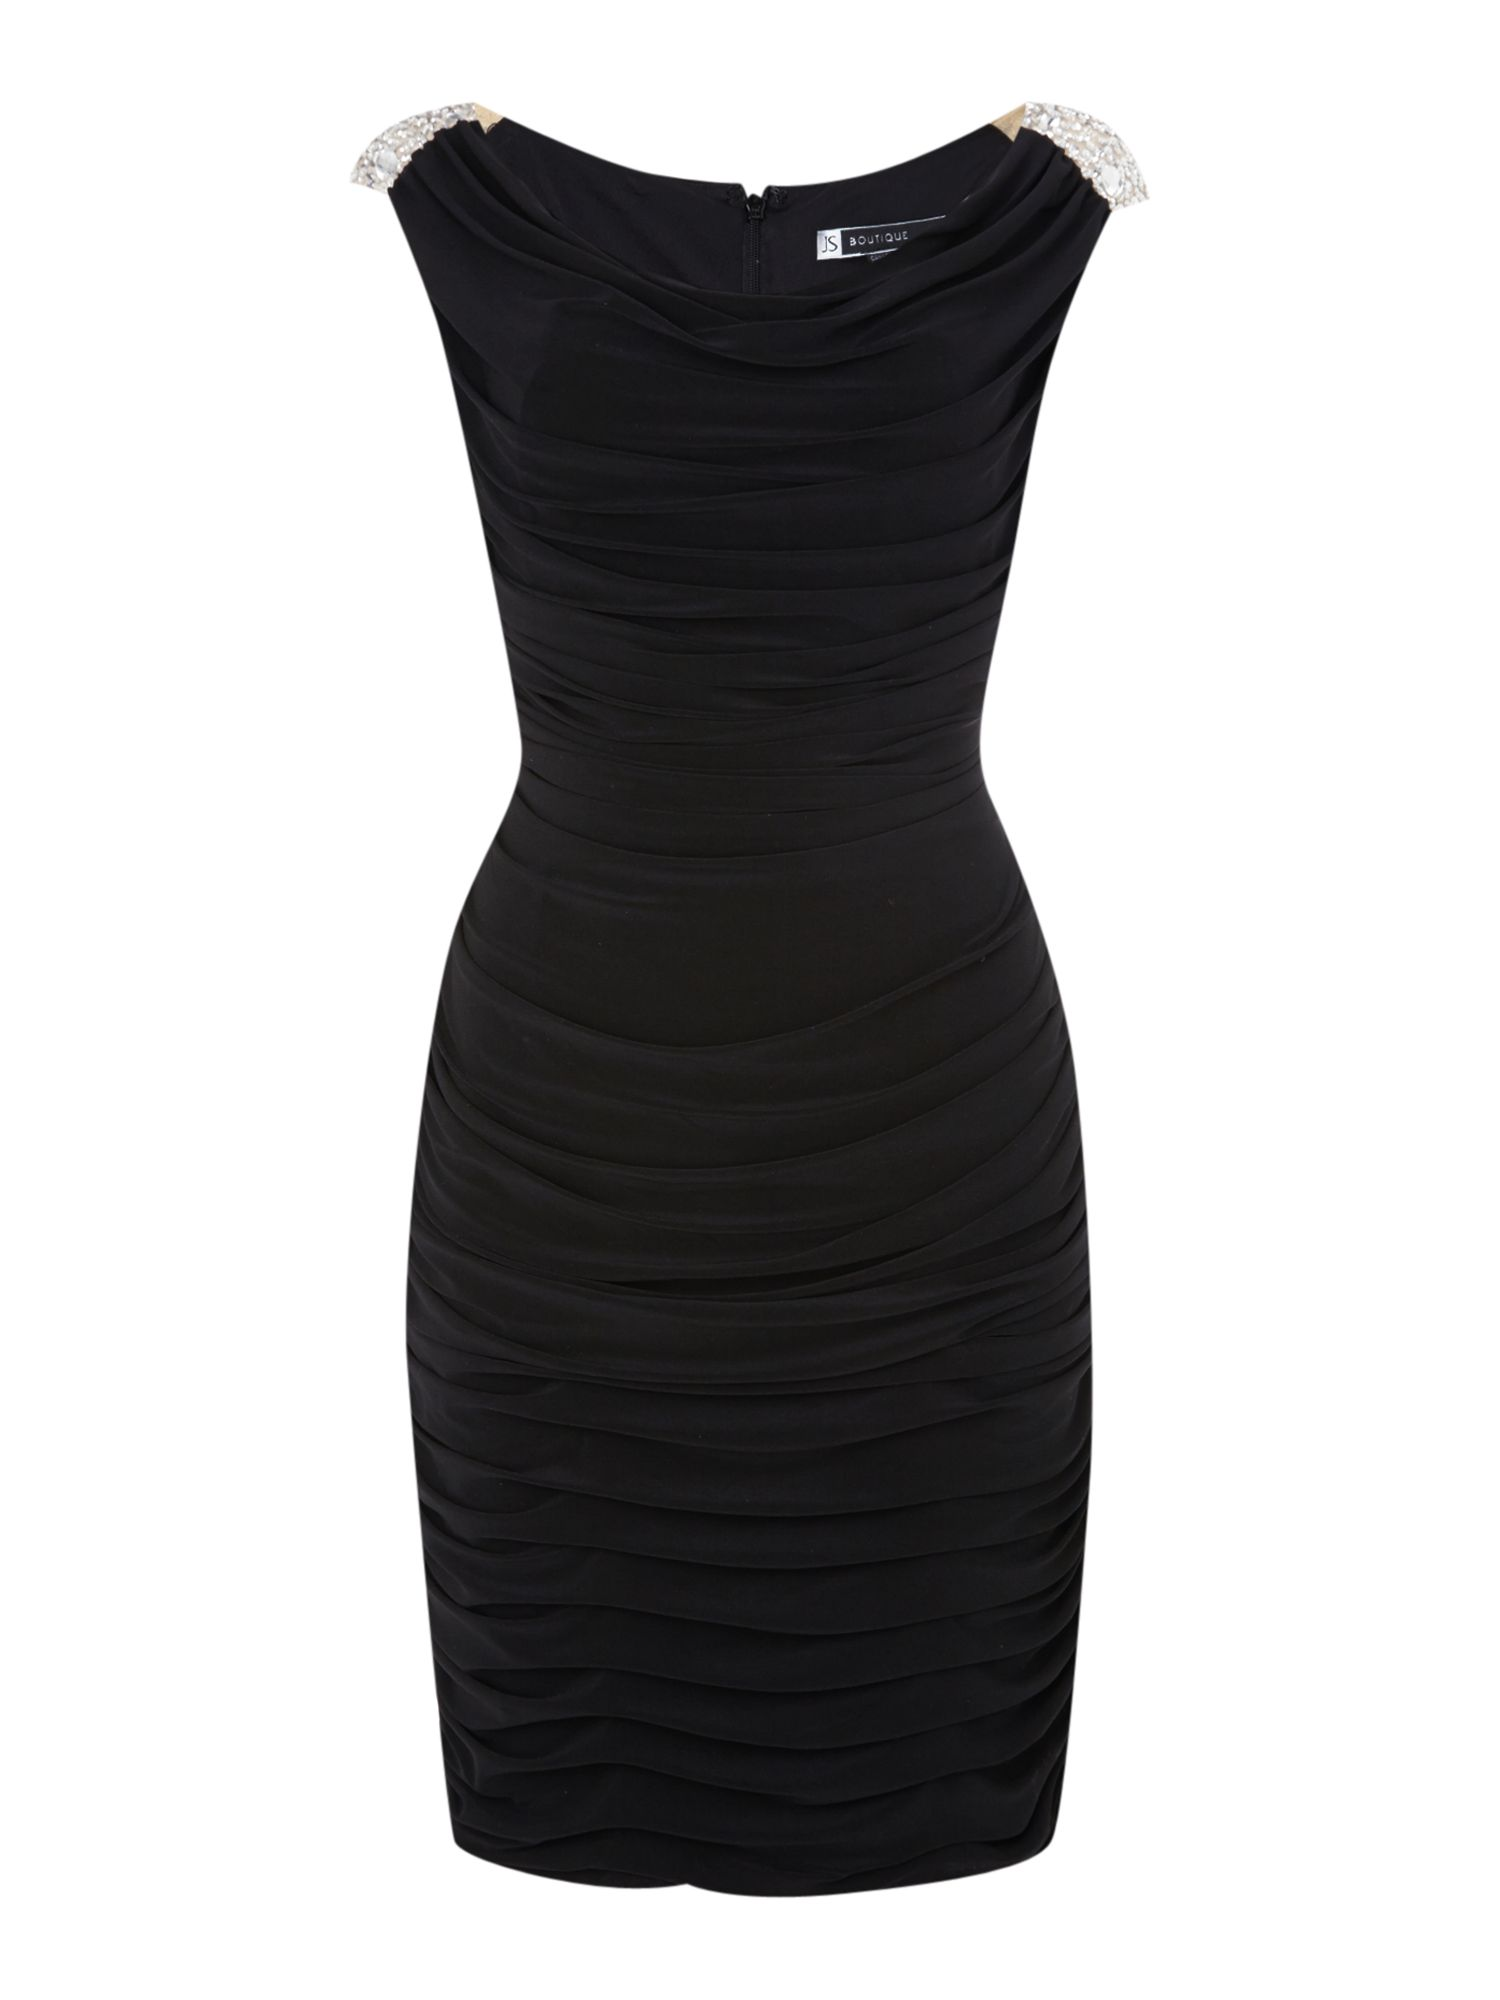 Rouched jersey dress with embellished shoulder